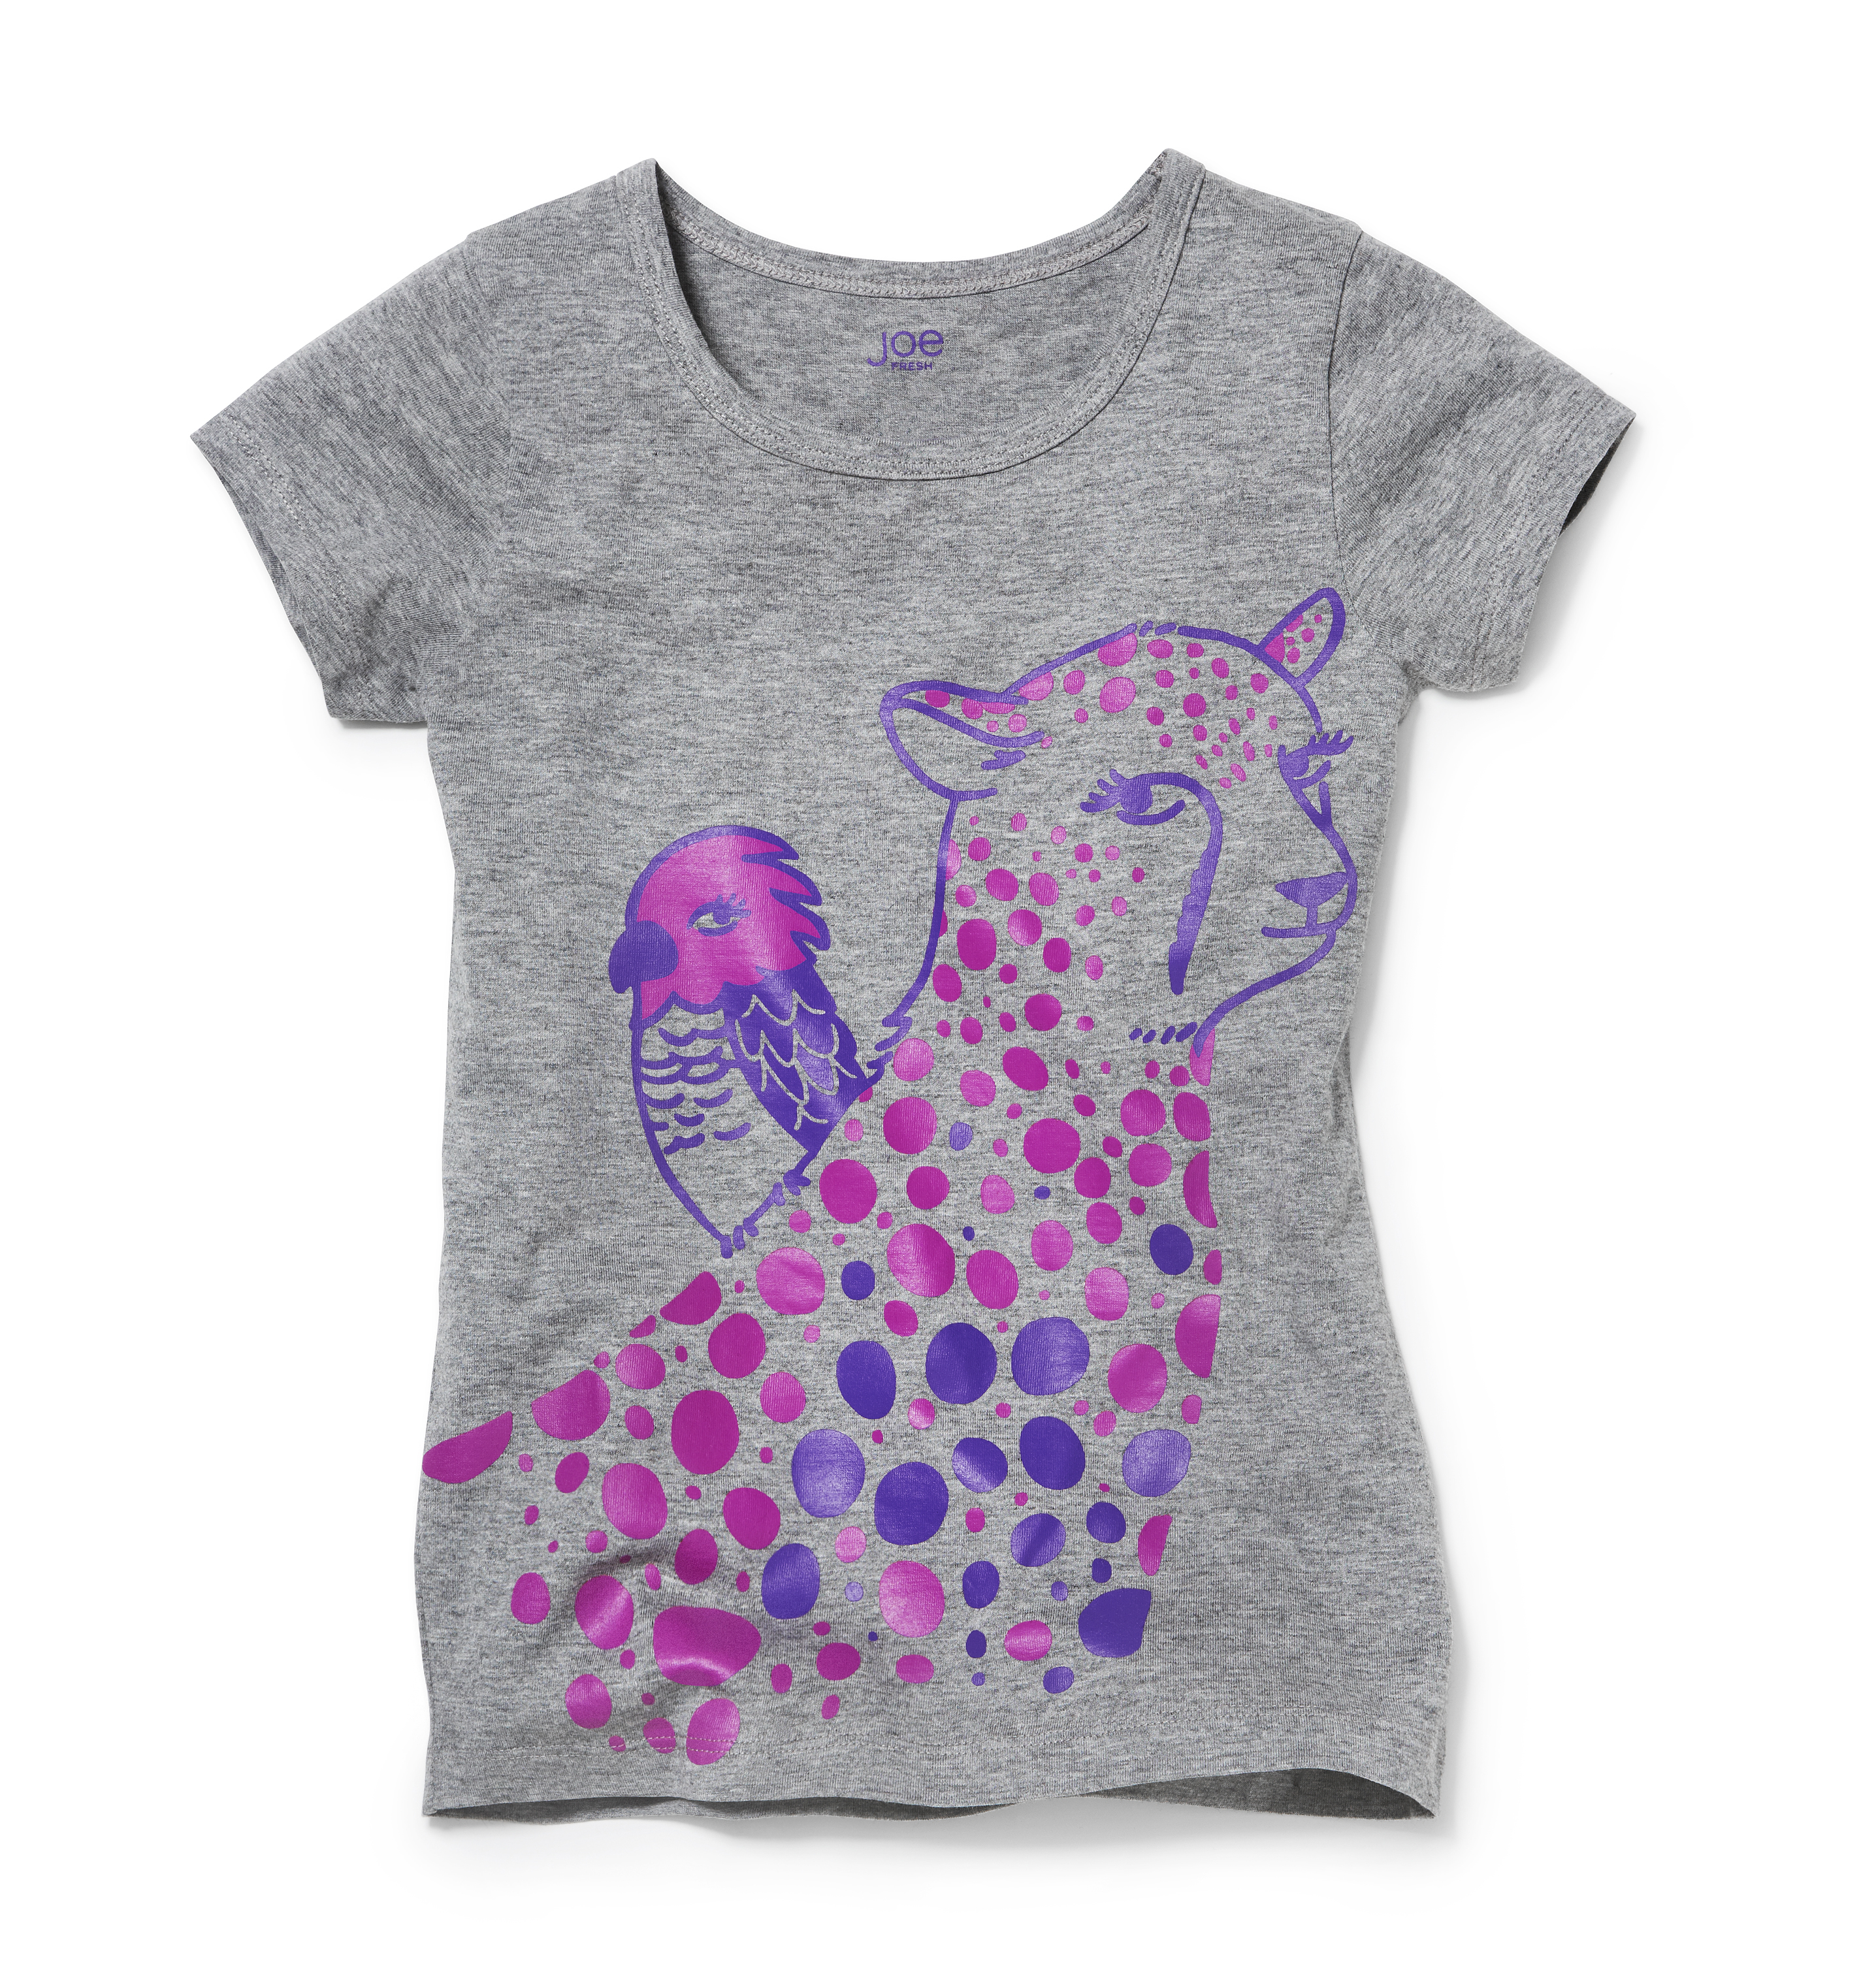 Kids Kid Girl Graphic Tee High-res